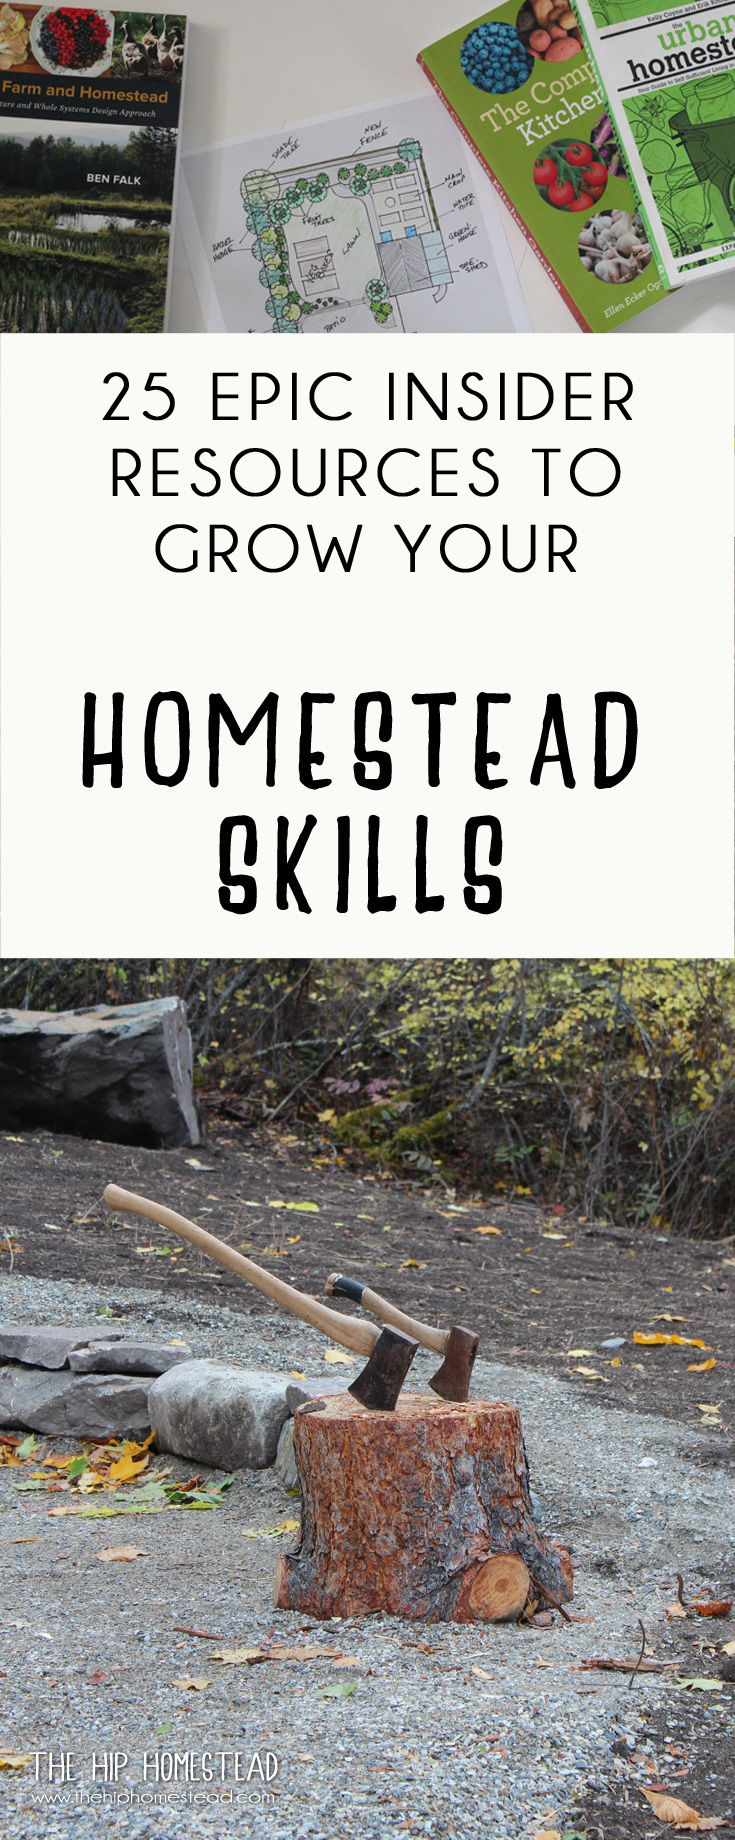 25 Epic Insider Resources to Grow your Homestead Skills - The Hip Homestead